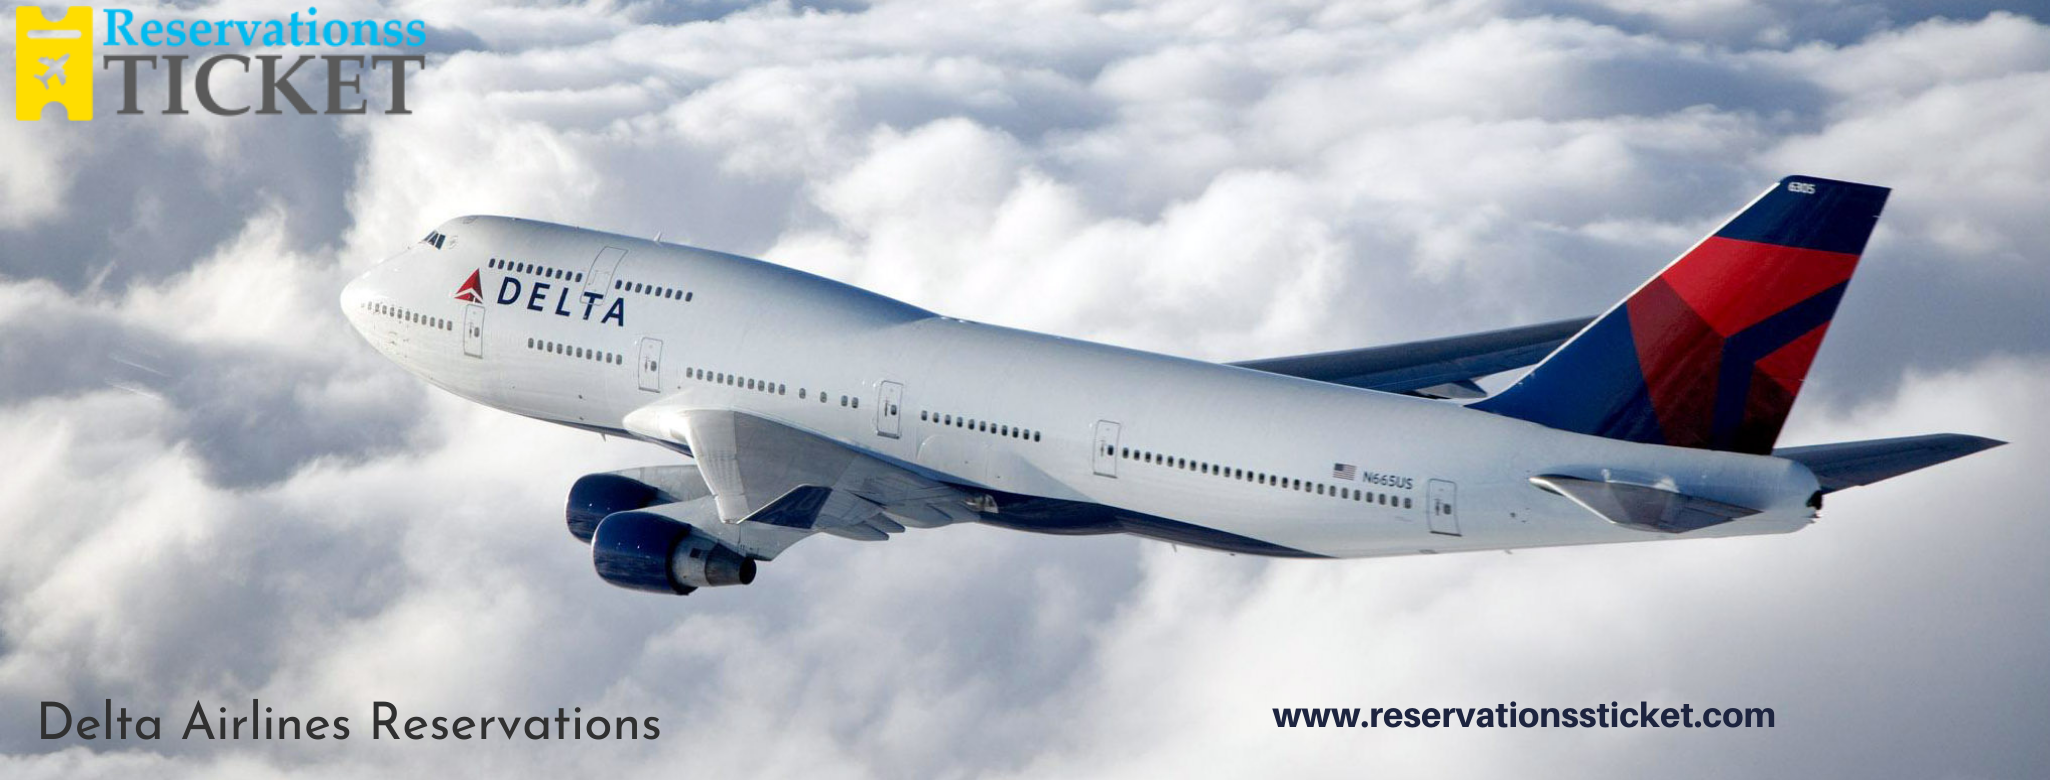 Book Best Delta Airlines Reservations